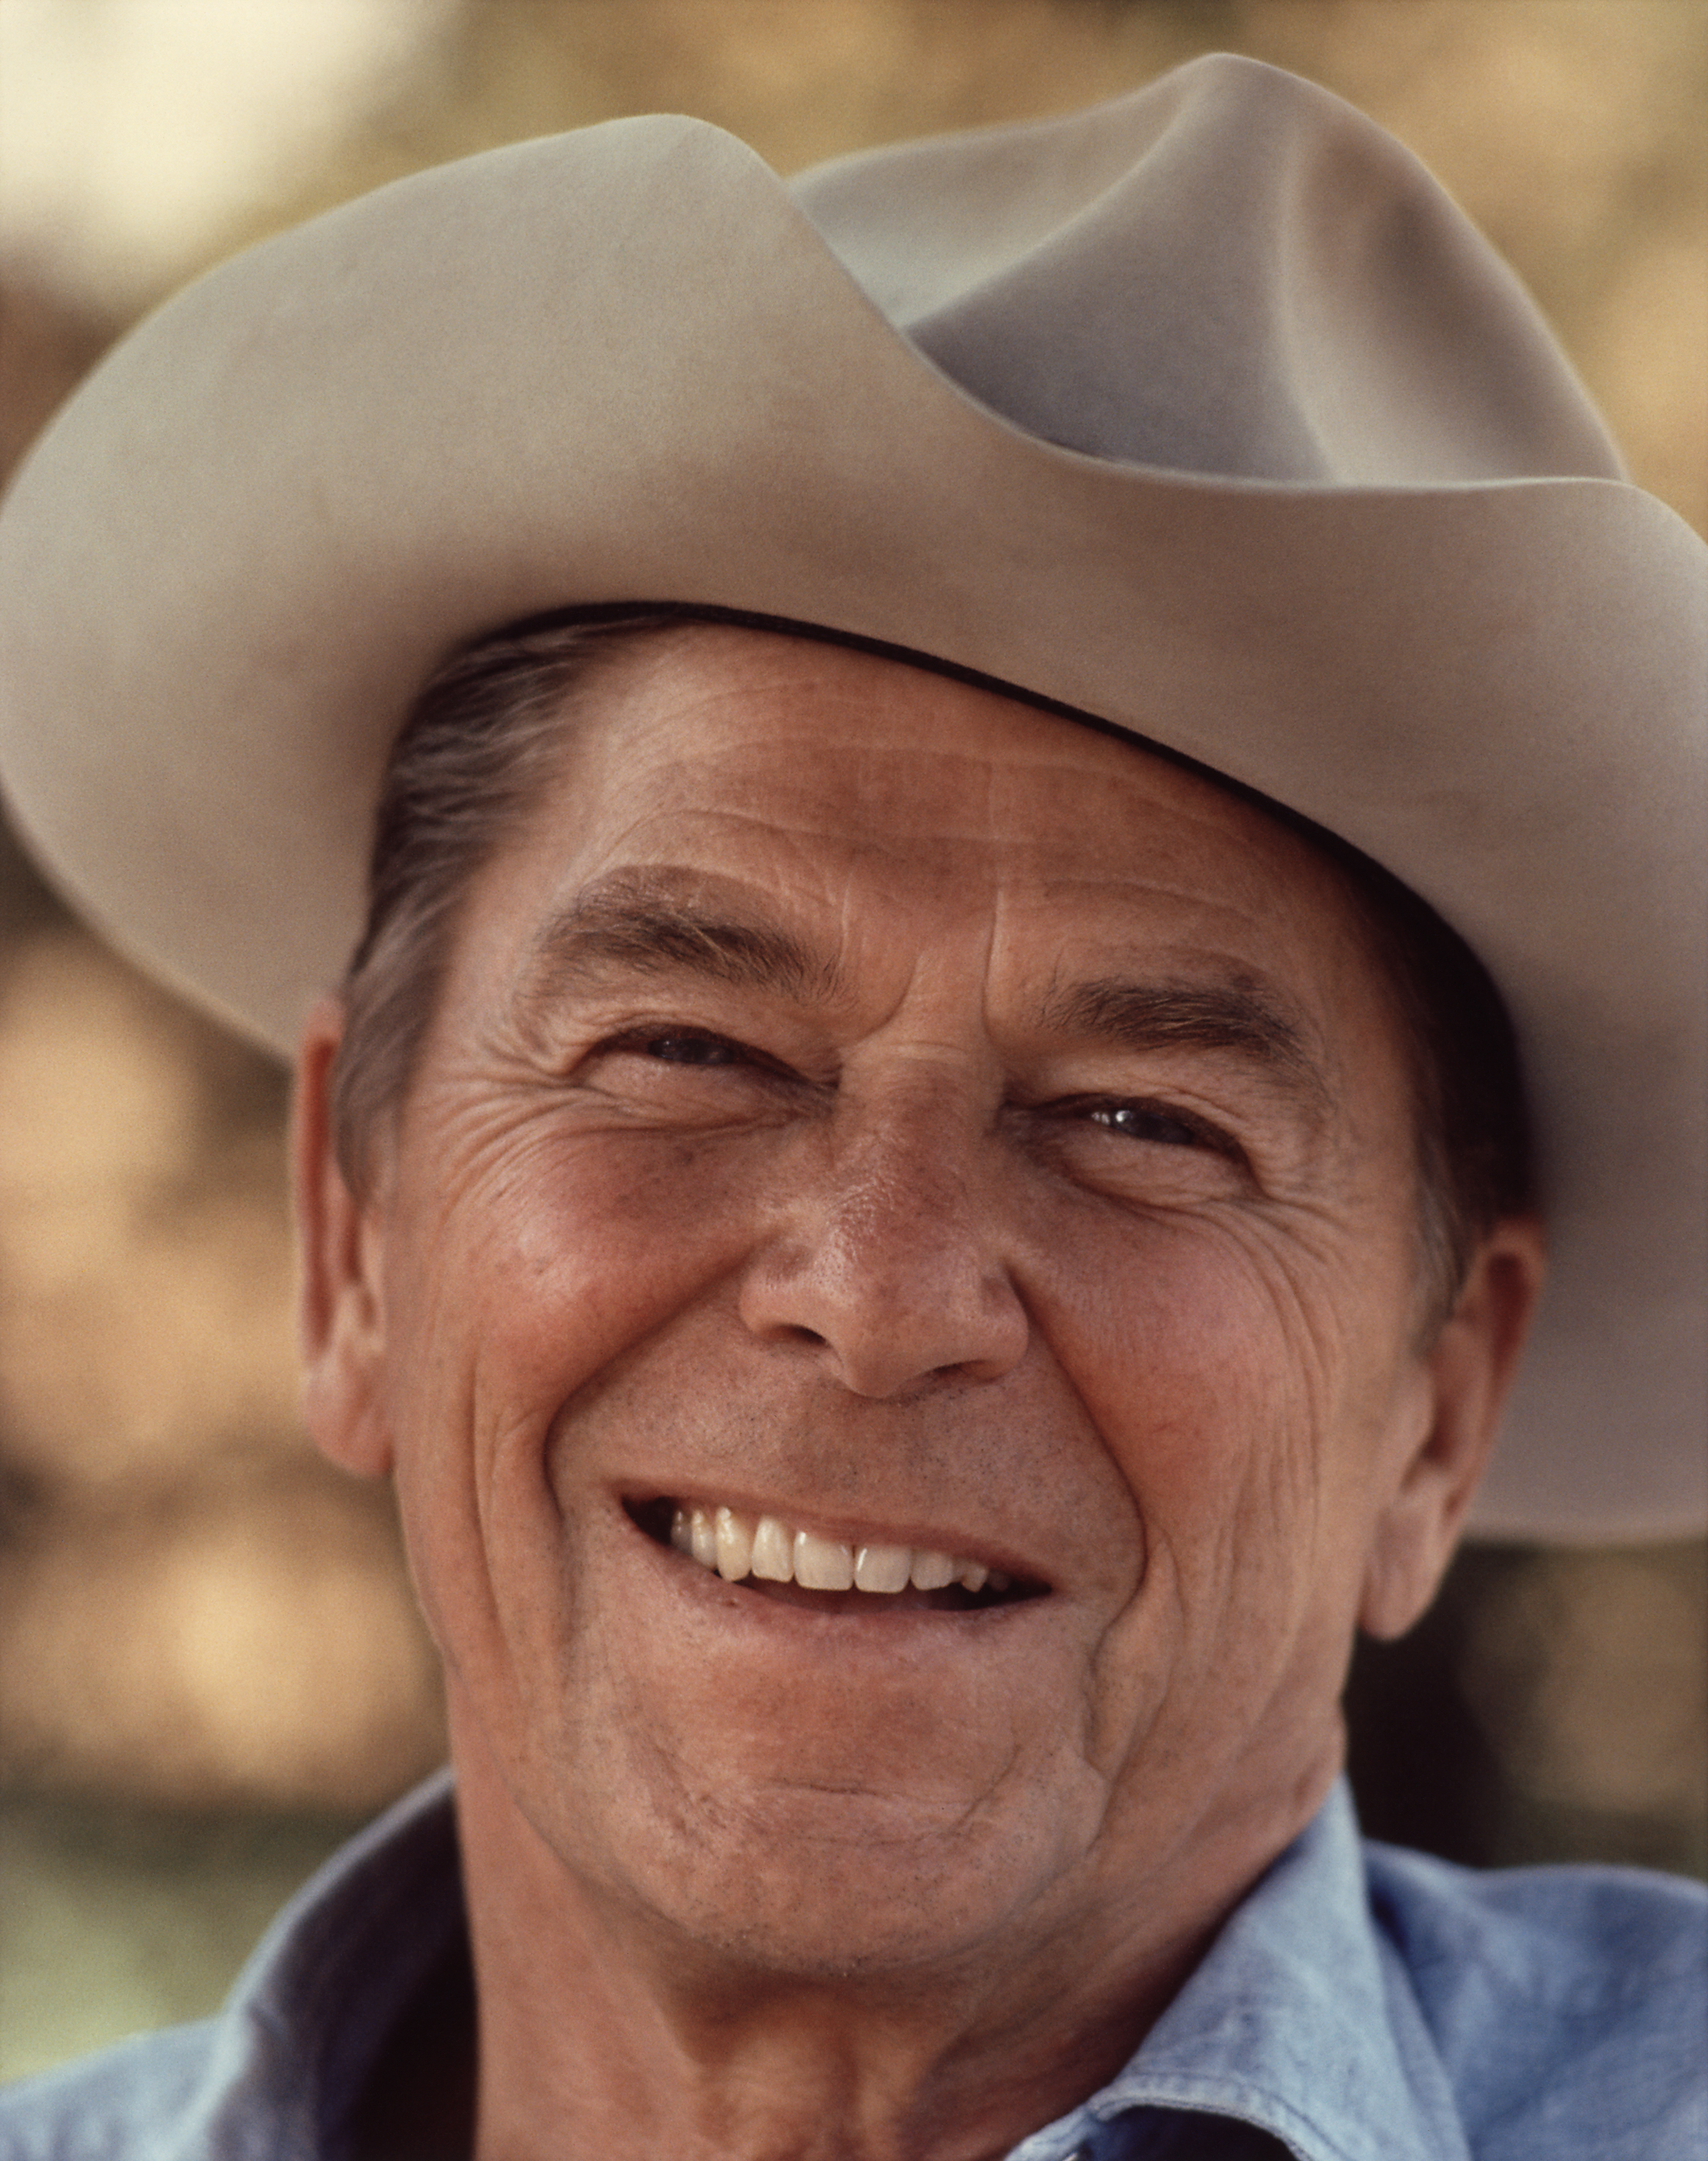 https://upload.wikimedia.org/wikipedia/commons/6/6a/Ronald_Reagan_with_cowboy_hat_12-0071M_edit.jpg#ronald%20reagan%20%202329x2947